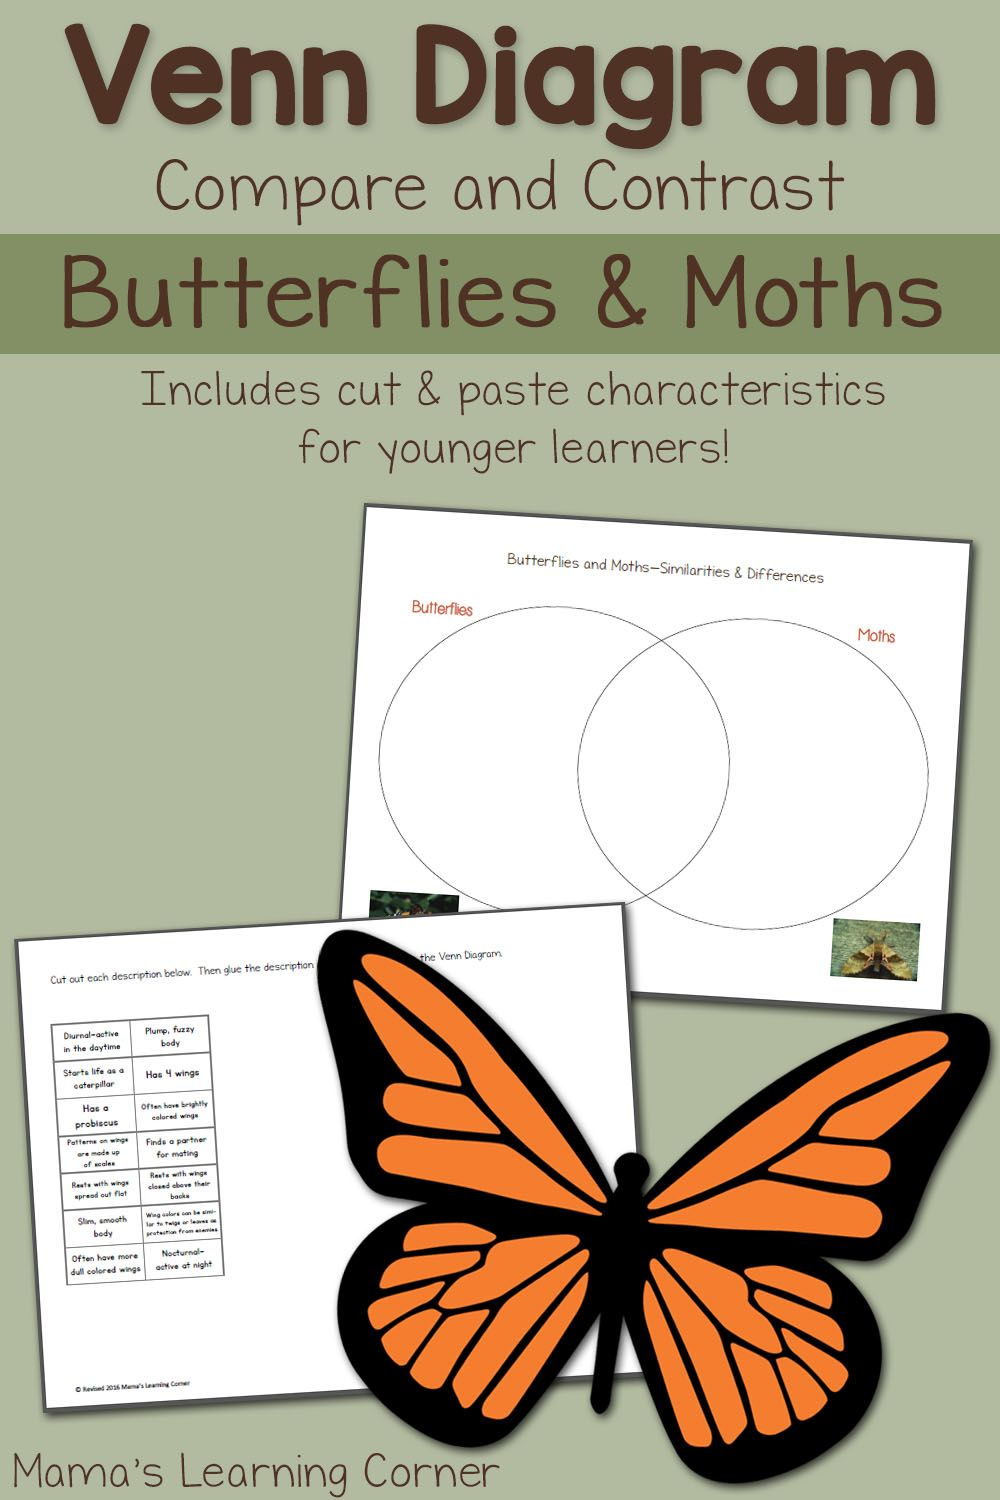 Moths and butterflies venn diagram worksheet venn diagrams download a moths and butterflies venn diagram for your young learner includes writing prompts to cut and paste if desired ccuart Gallery